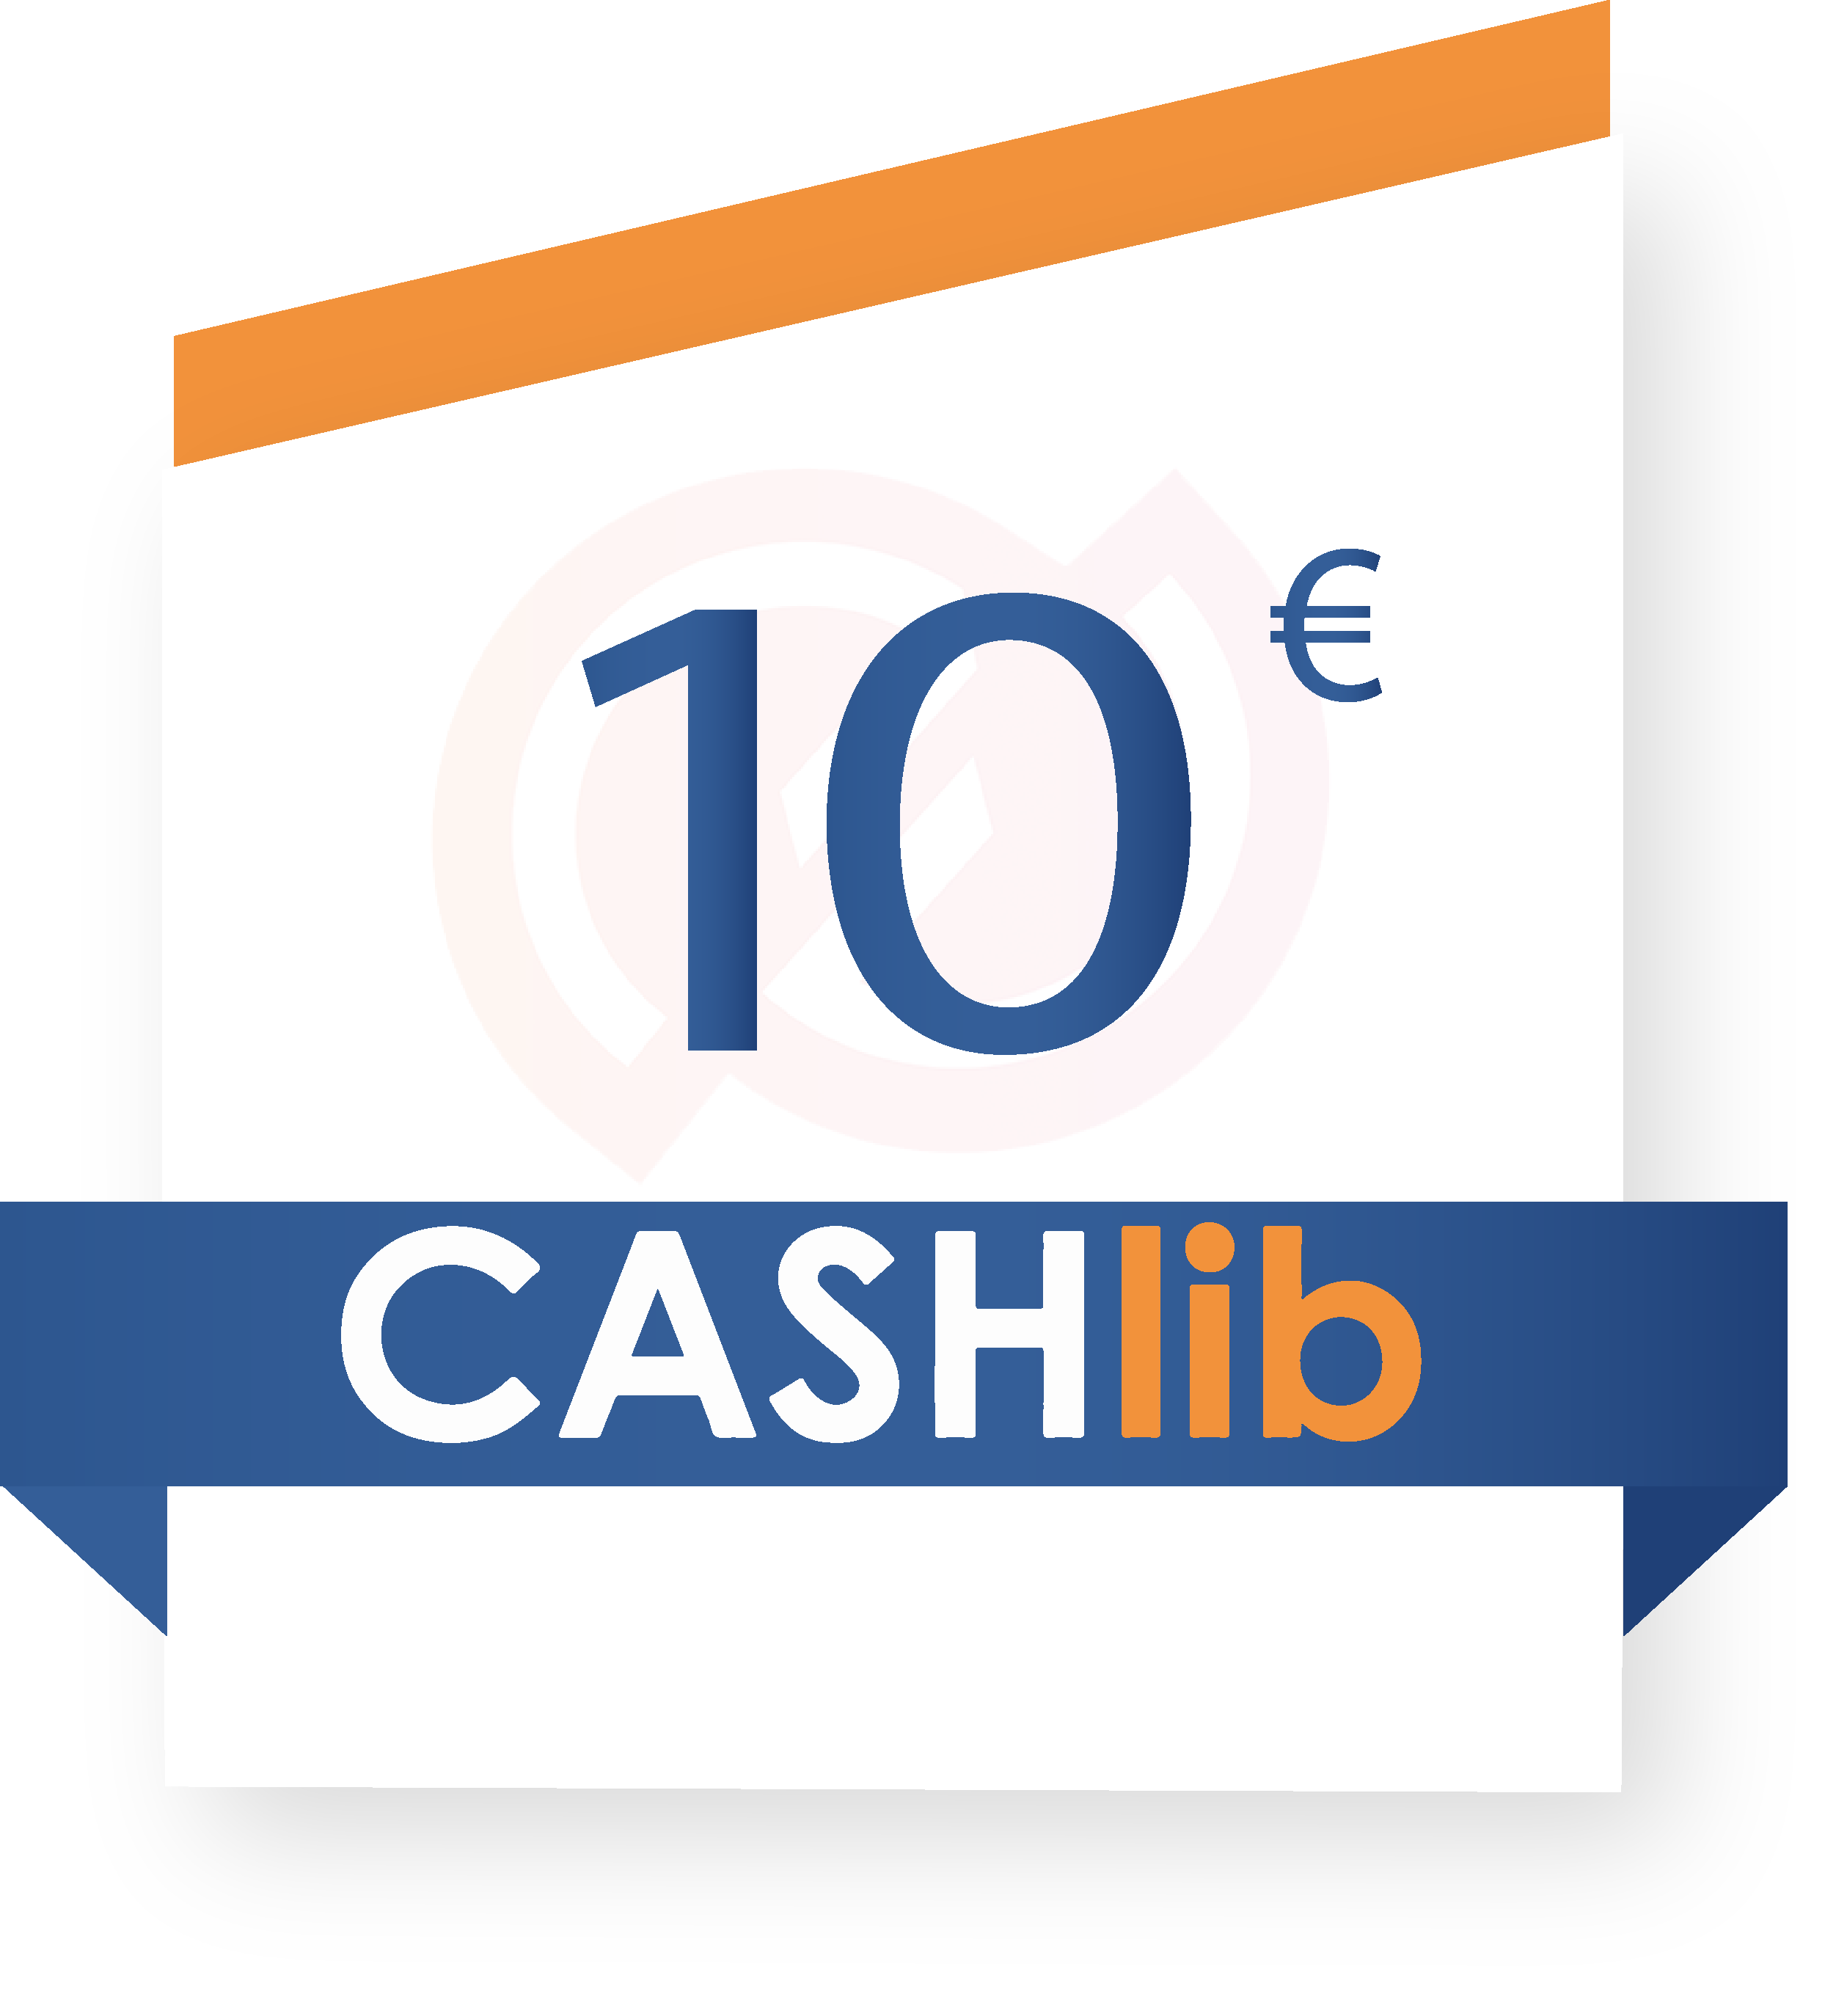 Coupon cashlib-10-euros